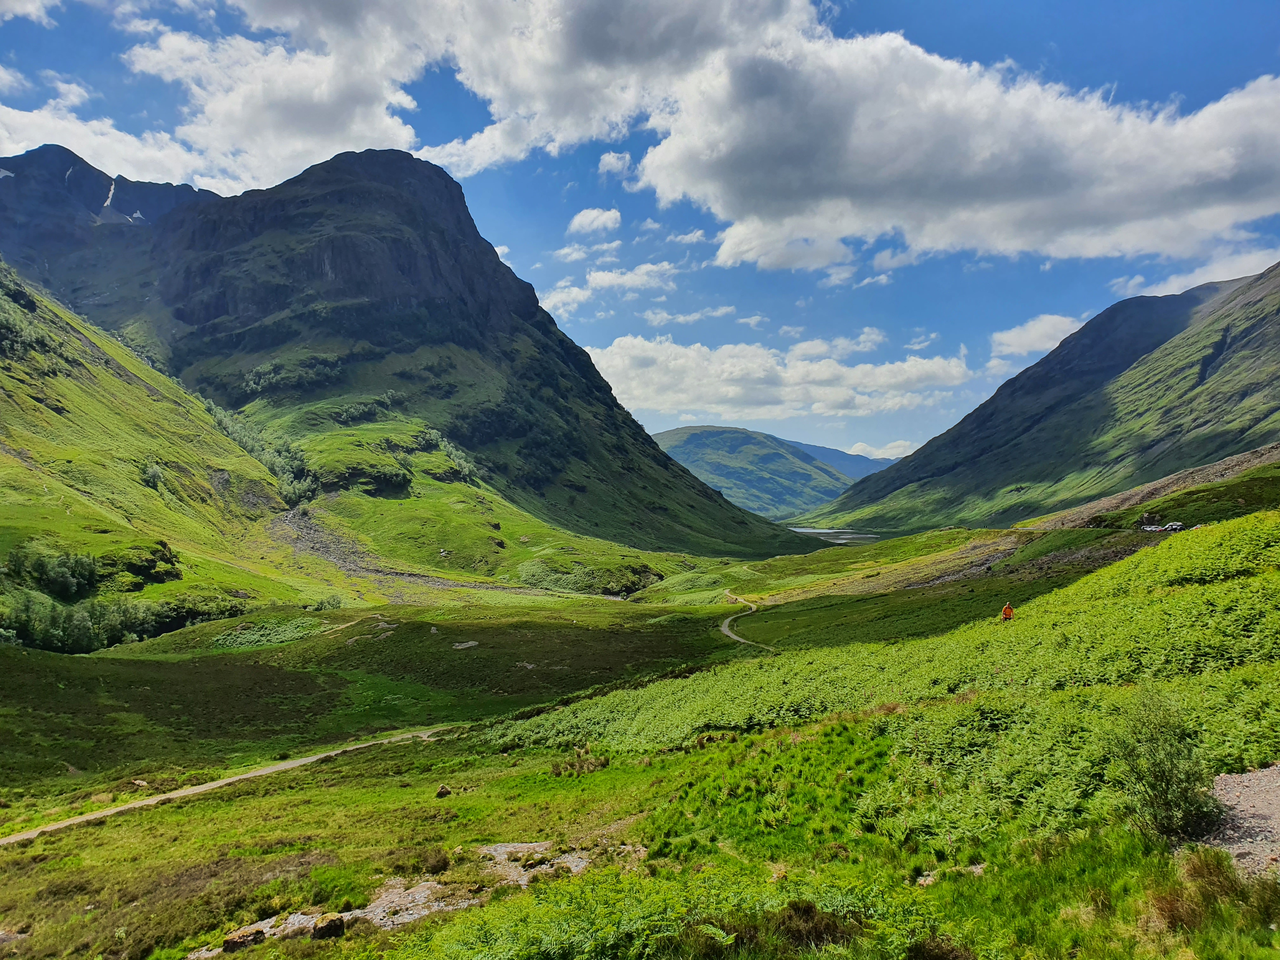 Scottish highlands with green shrubbery and cloudy blue sky